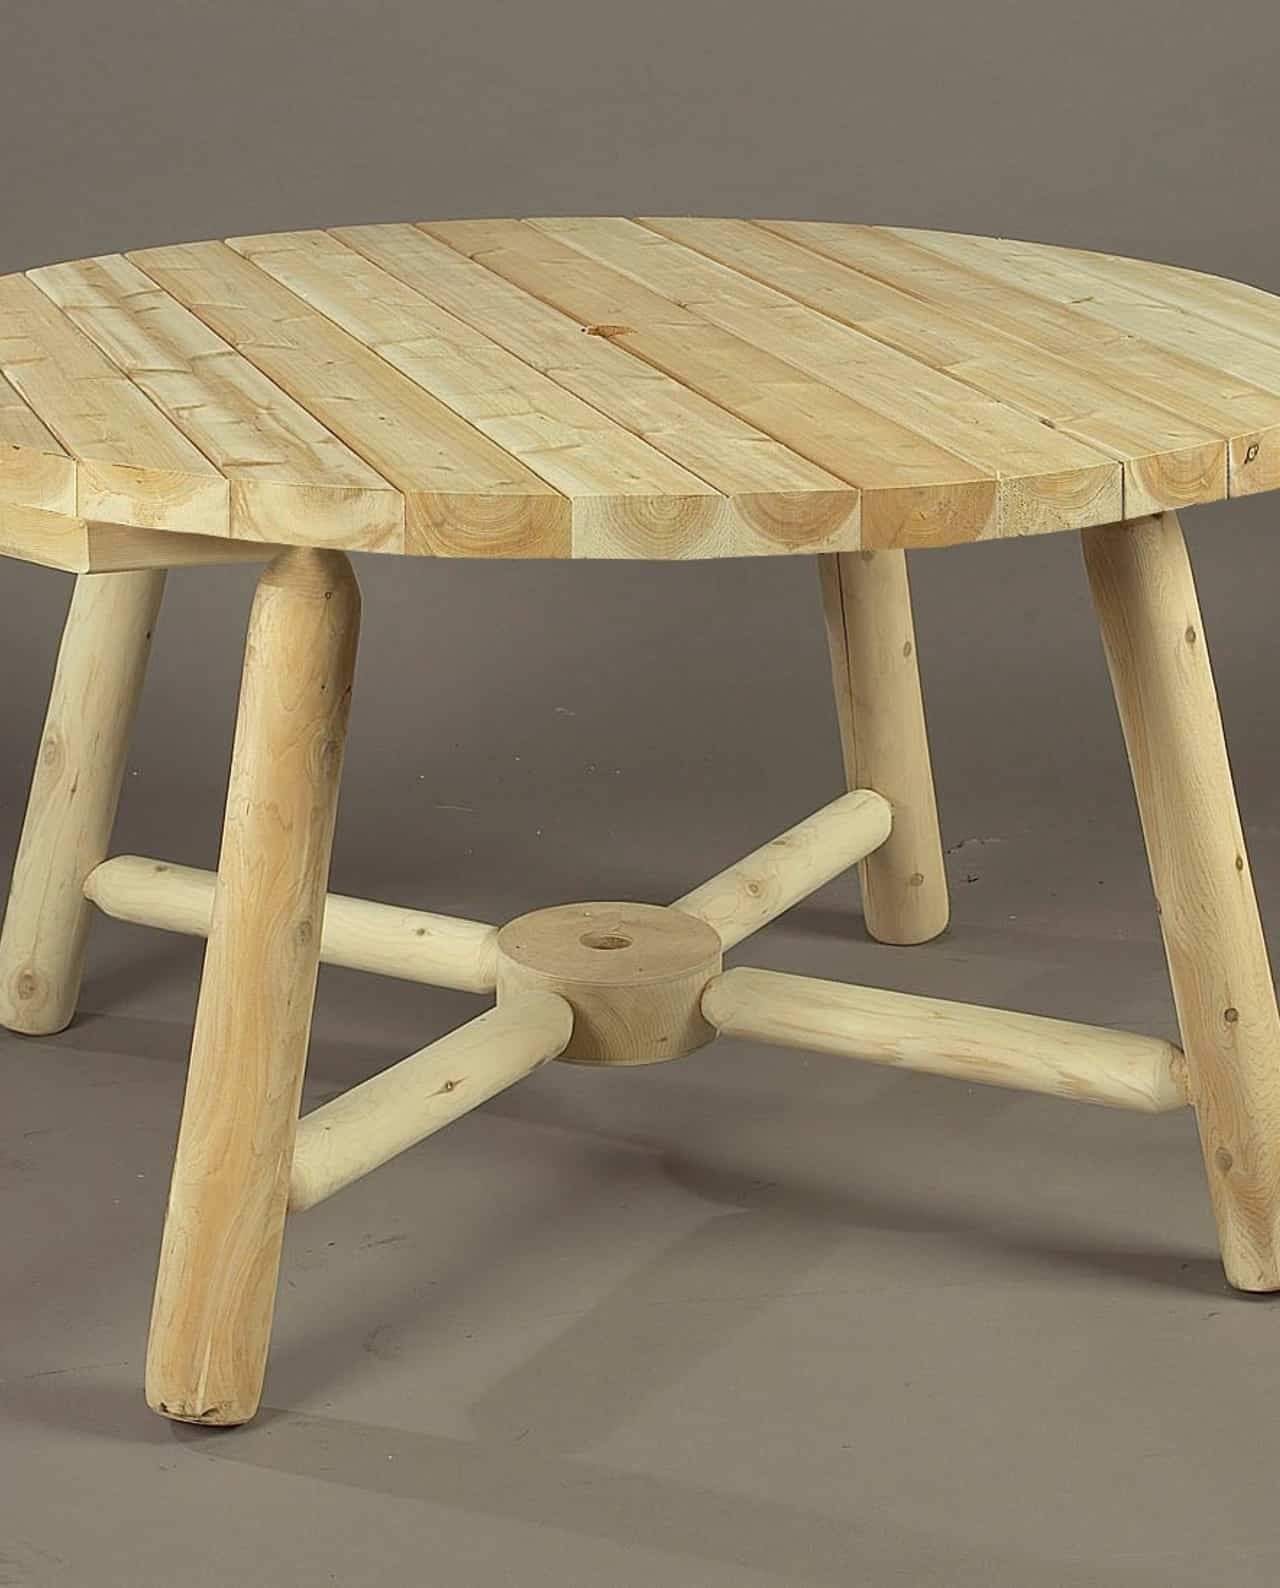 Table de jardin parasol ronde en c dre blanc c dre rondins for Decaper une table de jardin en bois